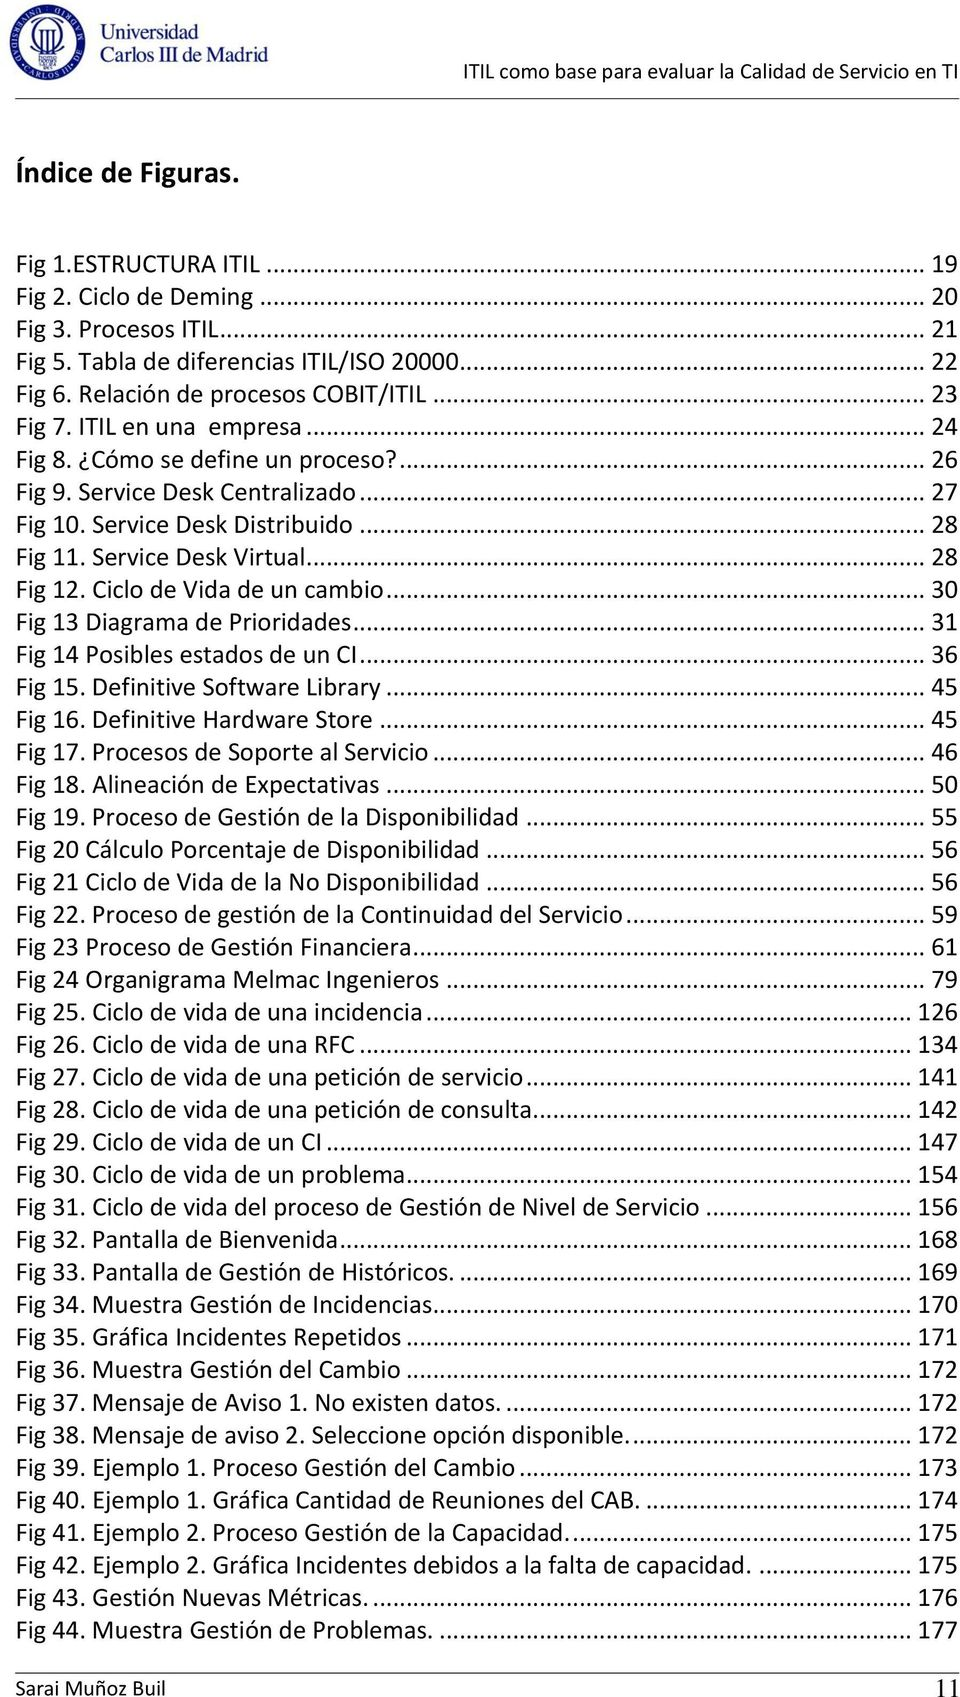 Ciclo de Vida de un cambio... 30 Fig 13 Diagrama de Prioridades... 31 Fig 14 Posibles estados de un CI... 36 Fig 15. Definitive Software Library... 45 Fig 16. Definitive Hardware Store... 45 Fig 17.